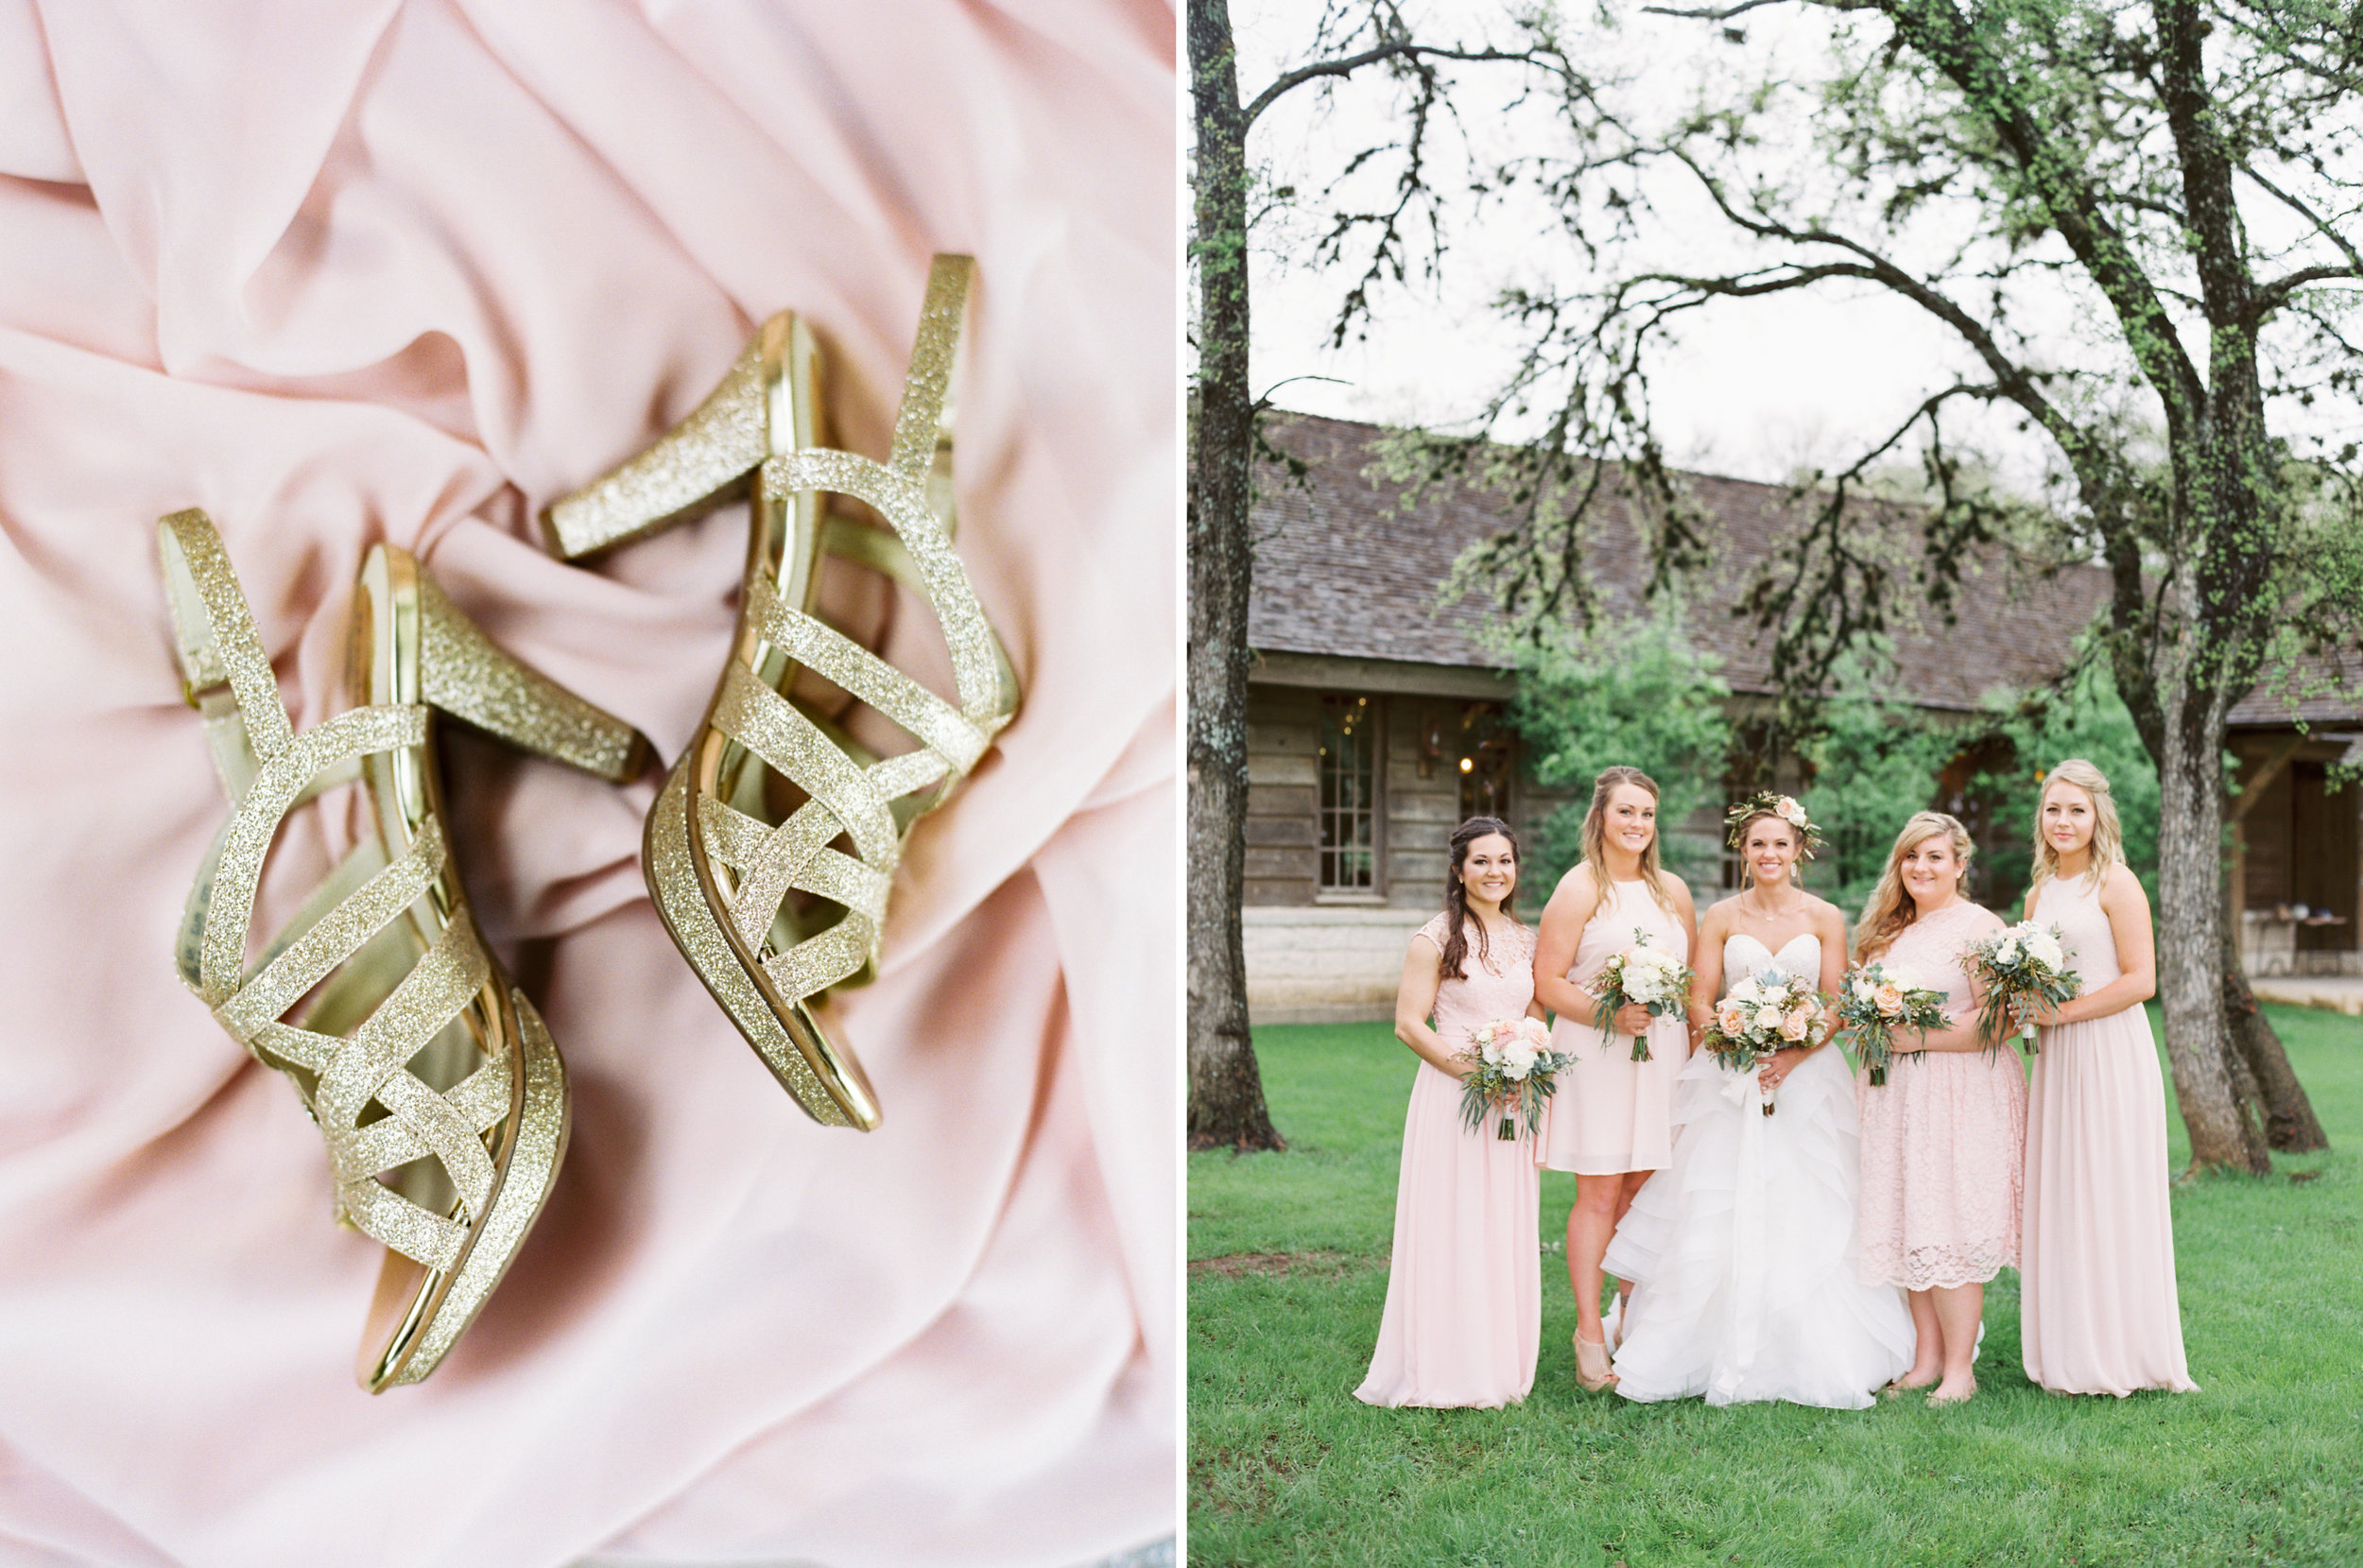 Hill Country Spring Wedding at Red Bud Hall | Austin Wedding Photographer | Film Wedding Photographer | Britni Dean Photography | Rainy Day Wedding Inspiration | blush bridesmaid dresses